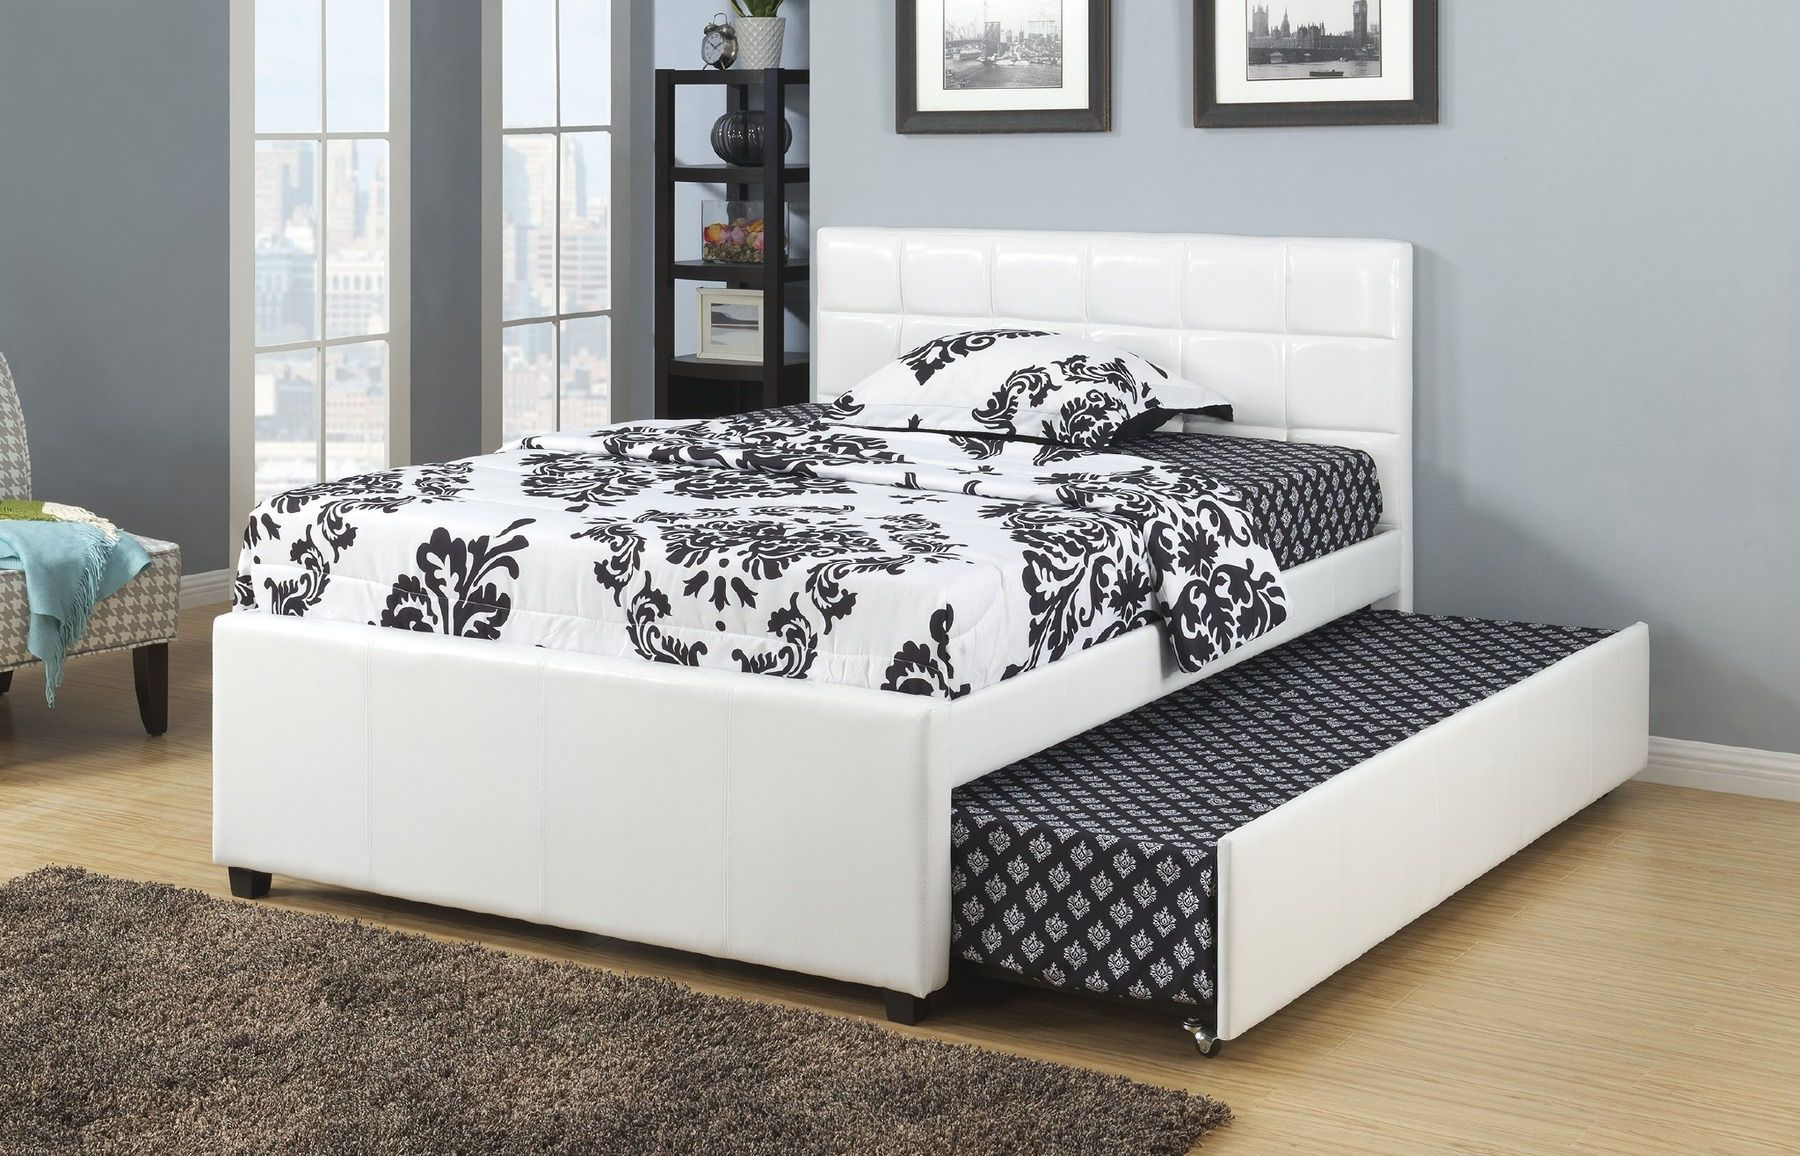 P9216 Full Size Bed 9216 Poundex Full Size Beds In 2020 Full Bed